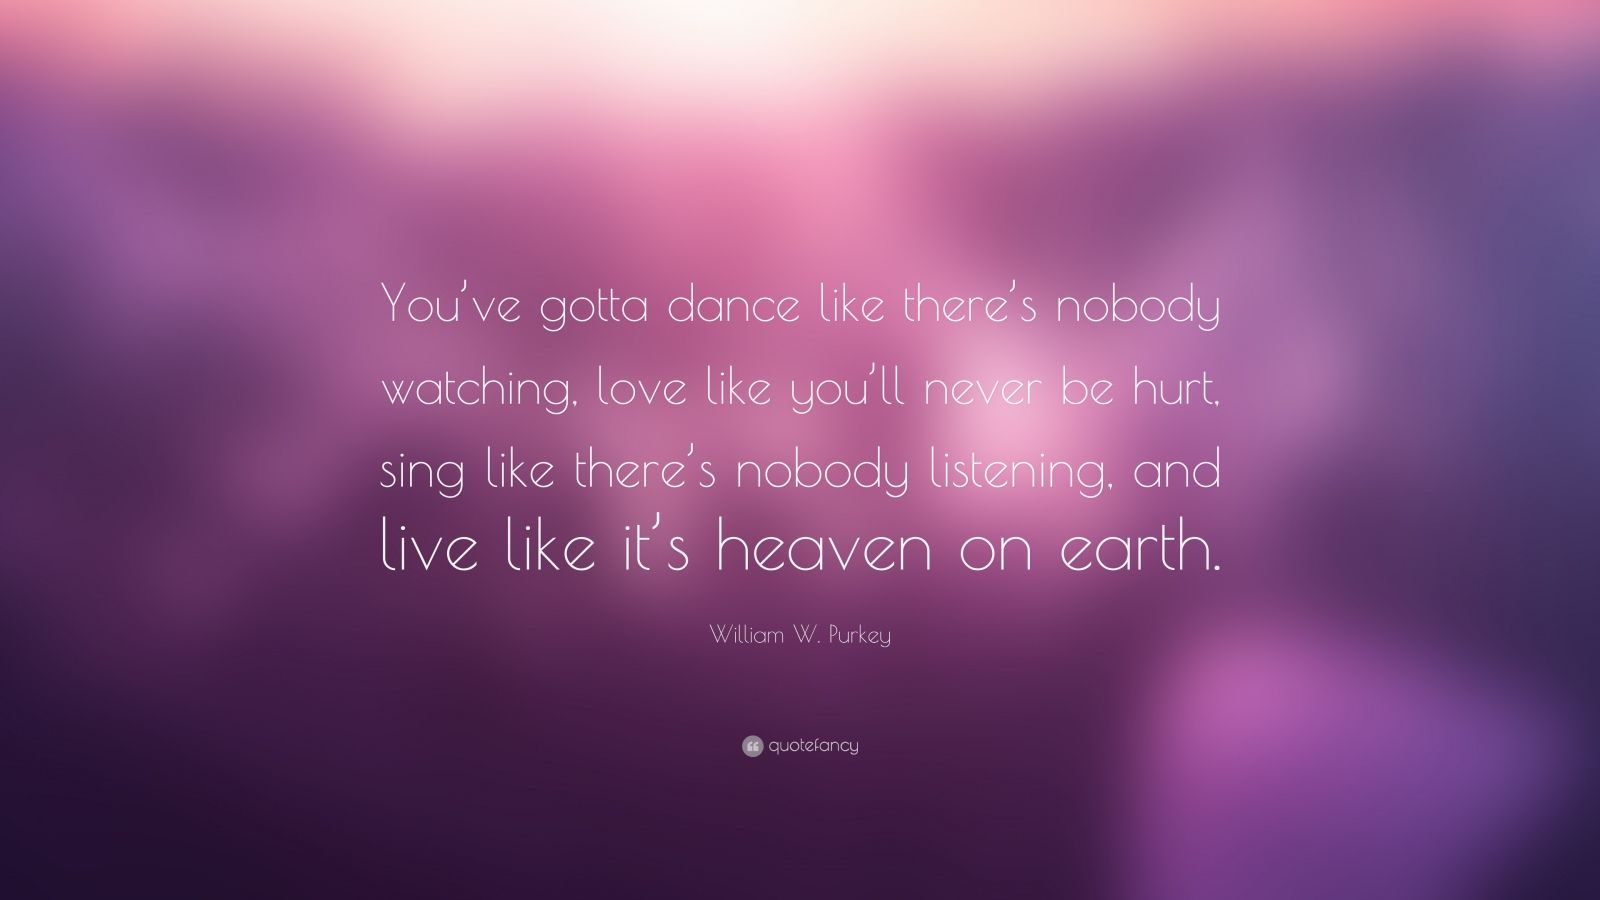 "William W. Purkey Quote: ""You've gotta dance like there's nobody watching, love like you'll never be hurt, sing like there's nobody listening, and live like it's heaven on earth."""